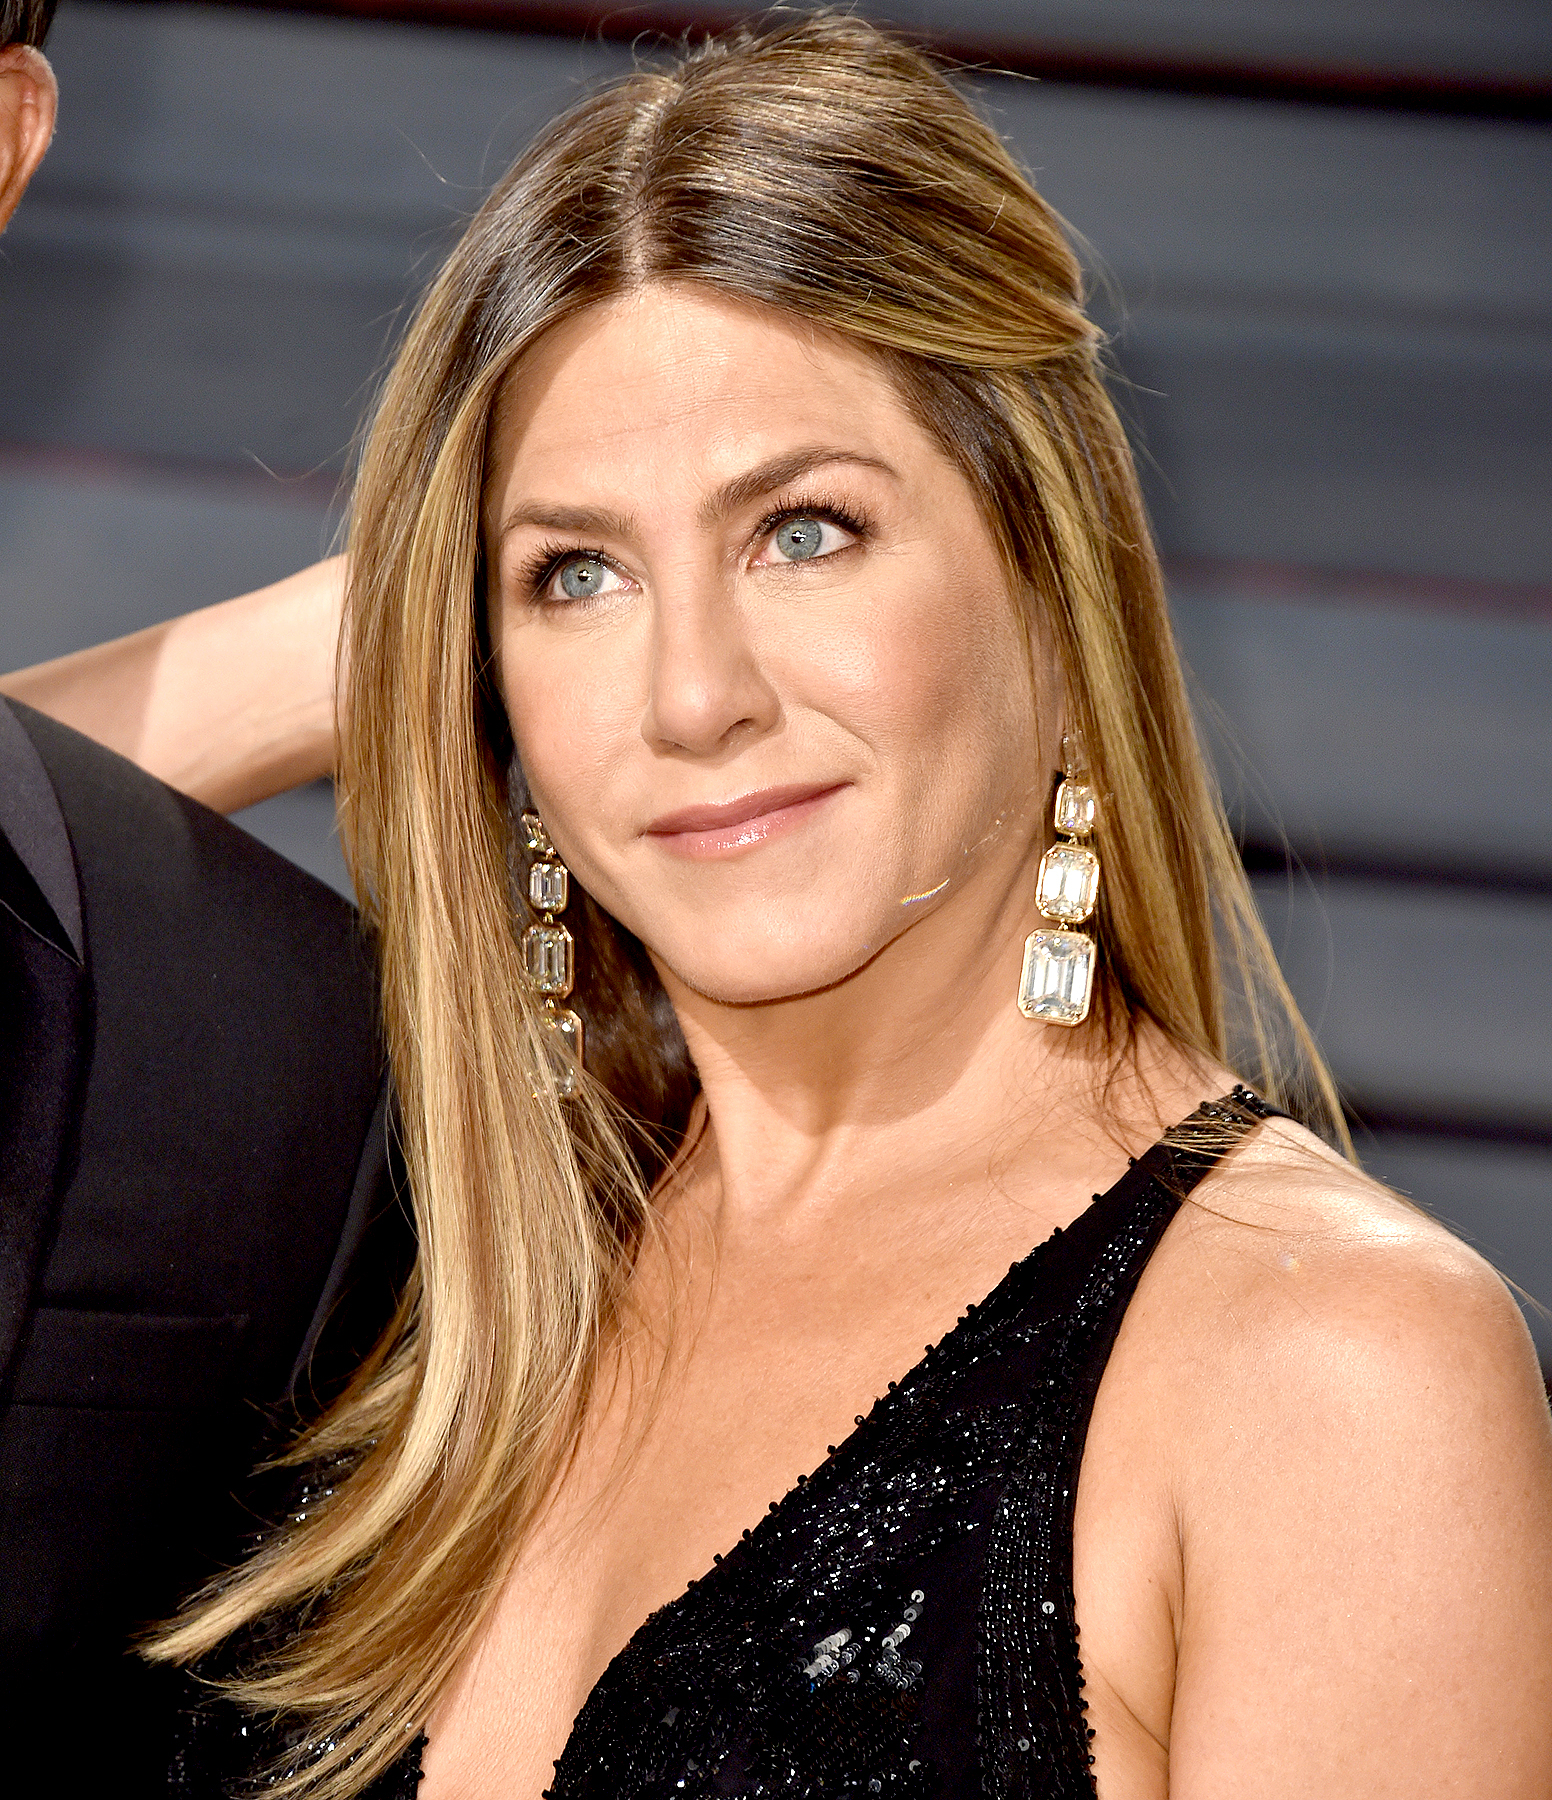 Jennifer Aniston attends the 2017 Vanity Fair Oscar Party hosted by Graydon Carter at Wallis Annenberg Center for the Performing Arts on February 26, 2017 in Beverly Hills, California.